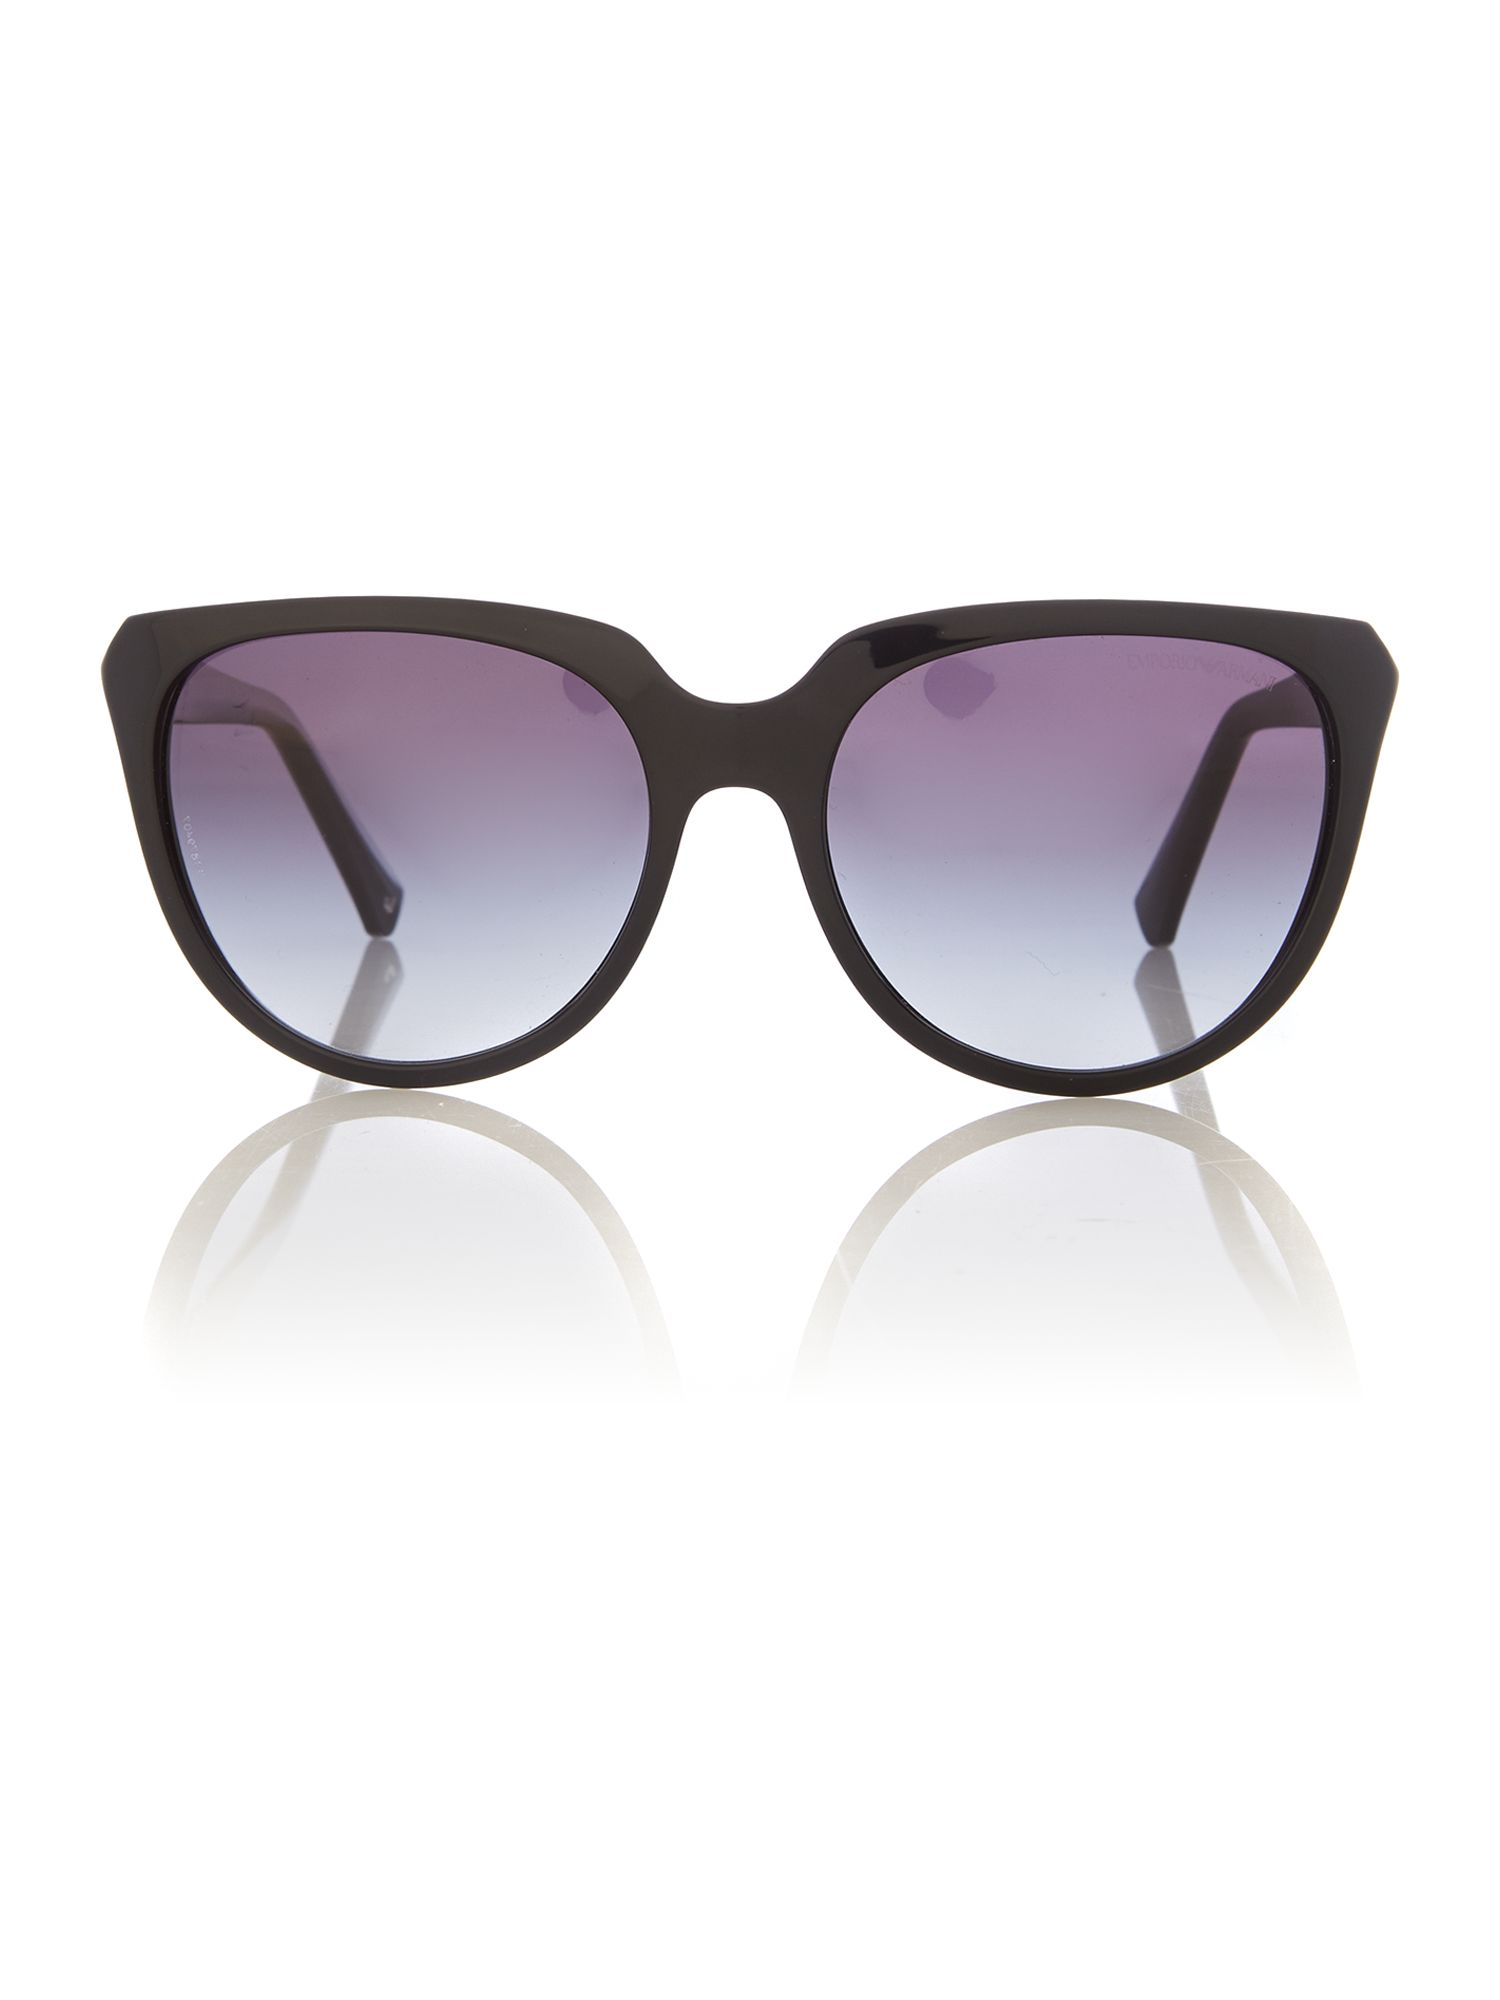 Ladies round sunglasses